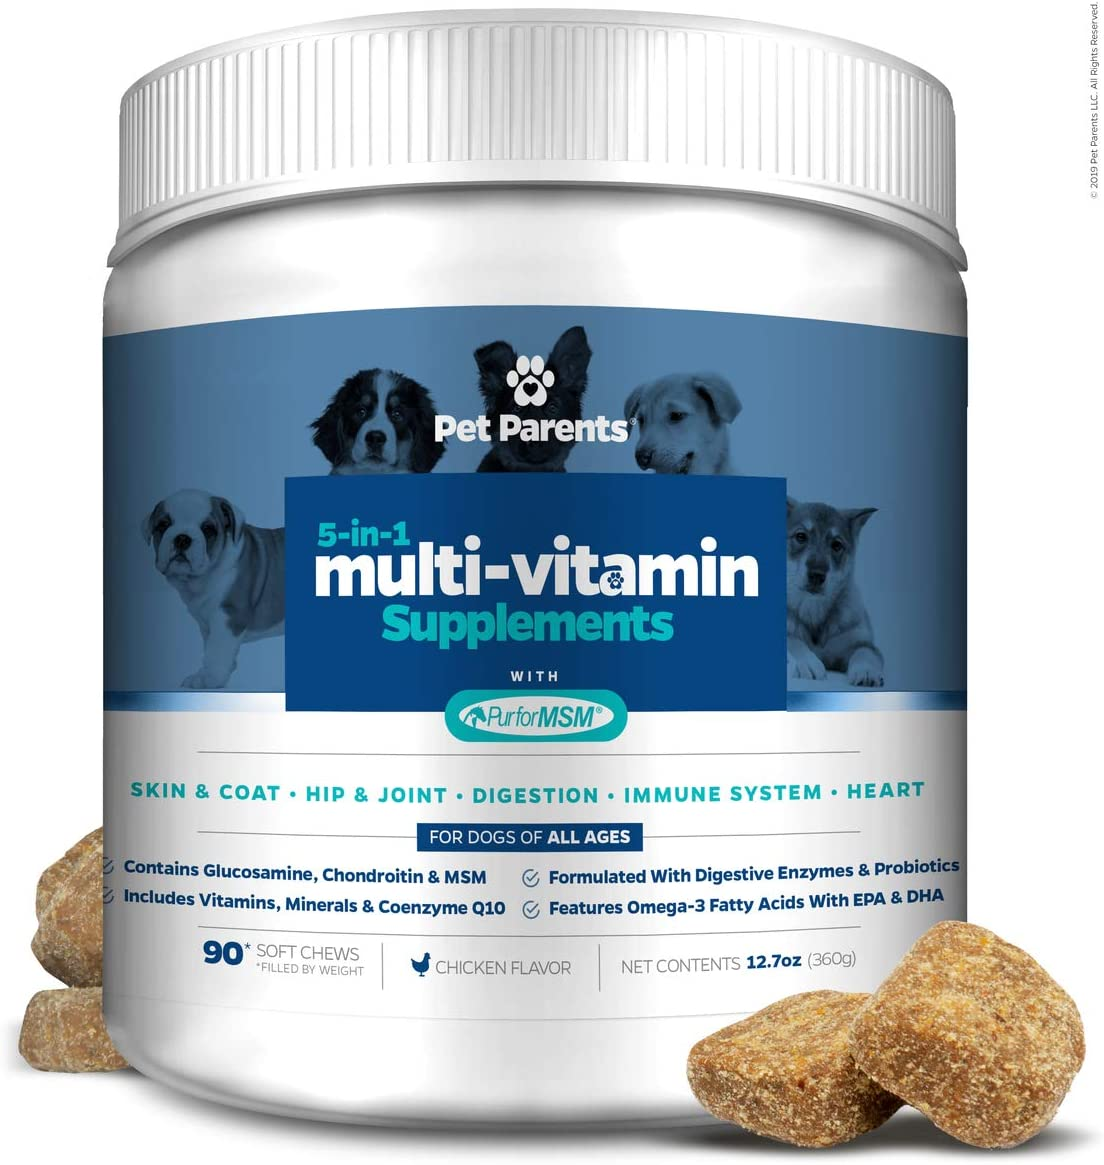 Pet Parents USA Dog Multivitamin 4g 90c- Omega 3 For Dogs Glucosamine for Dogs Dog Probiotics MSM for Dogs, Multivitamin for Dogs, Dog Vitamins Dog Immunity, Vitamins For Dogs Puppy Vitamins